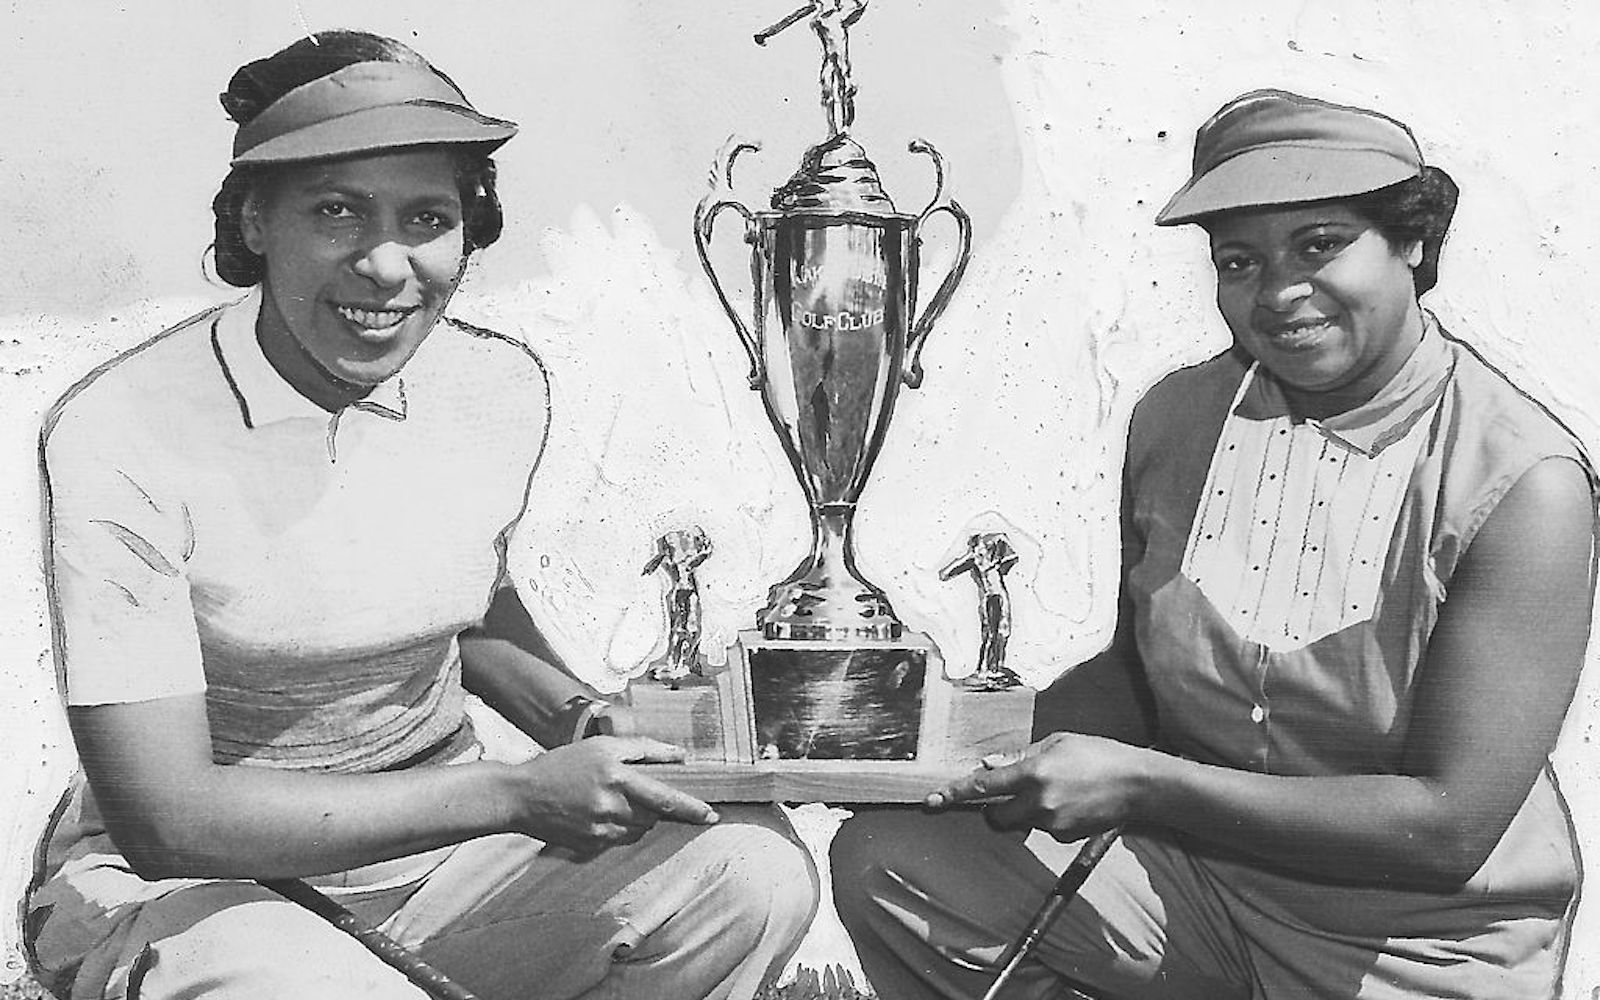 Wake Robin Golf Club, African American Golf, Black Golfers, KOLUMN Magazine, KOLUMN, KINDR'D Magazine, KINDR'D, Willoughby Avenue, Wriit,